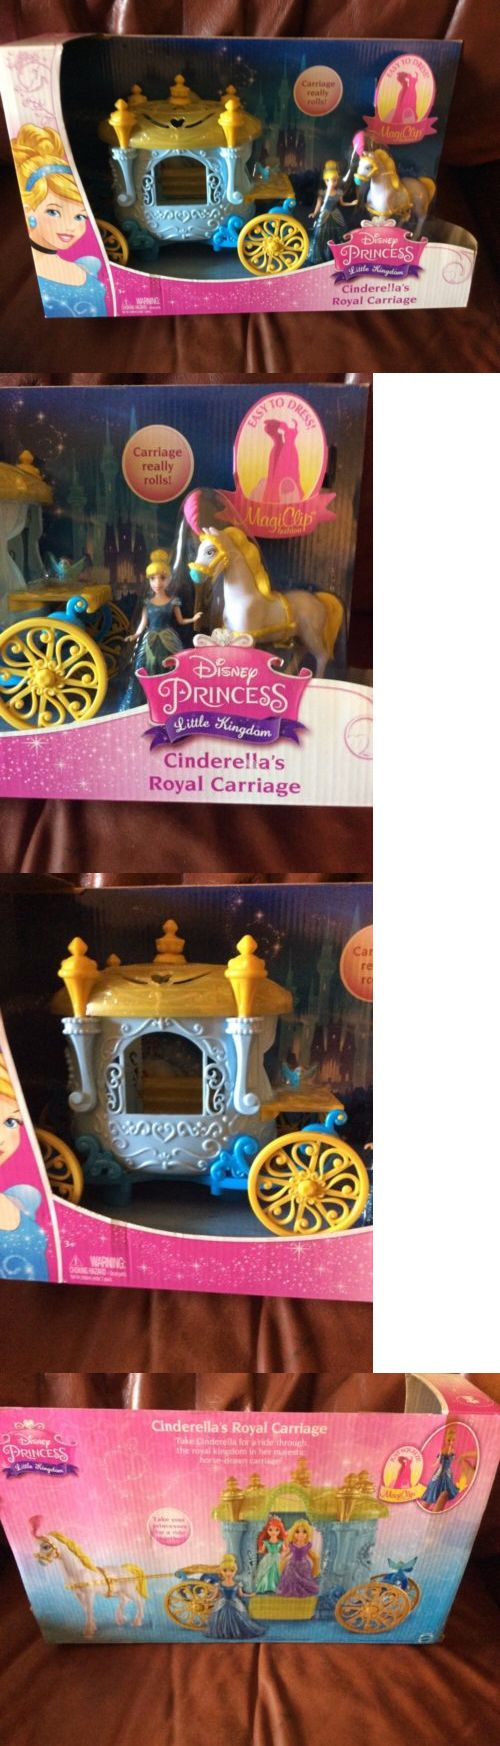 Cinderella 44034: Disney New Cinderella Royal Carriage With Figure And Horse -> BUY IT NOW ONLY: $55 on eBay!